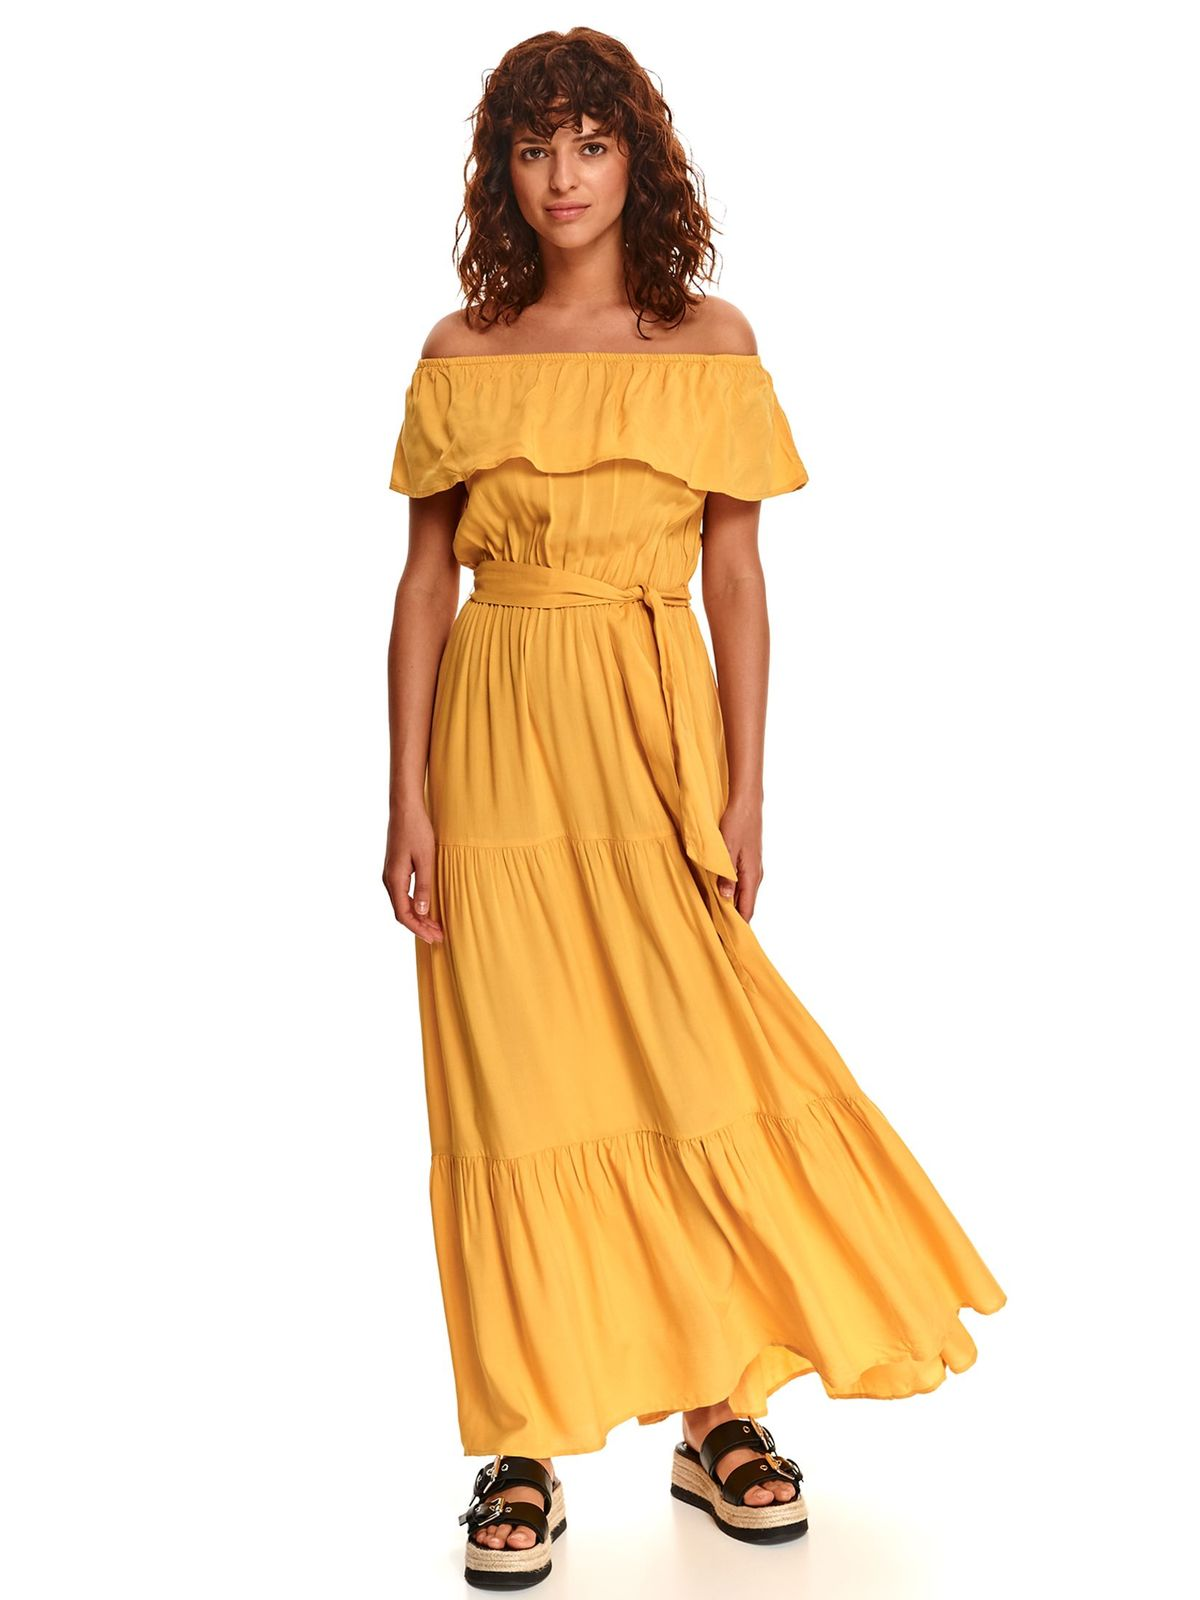 Yellow dress long on the shoulders with ruffle details loose fit